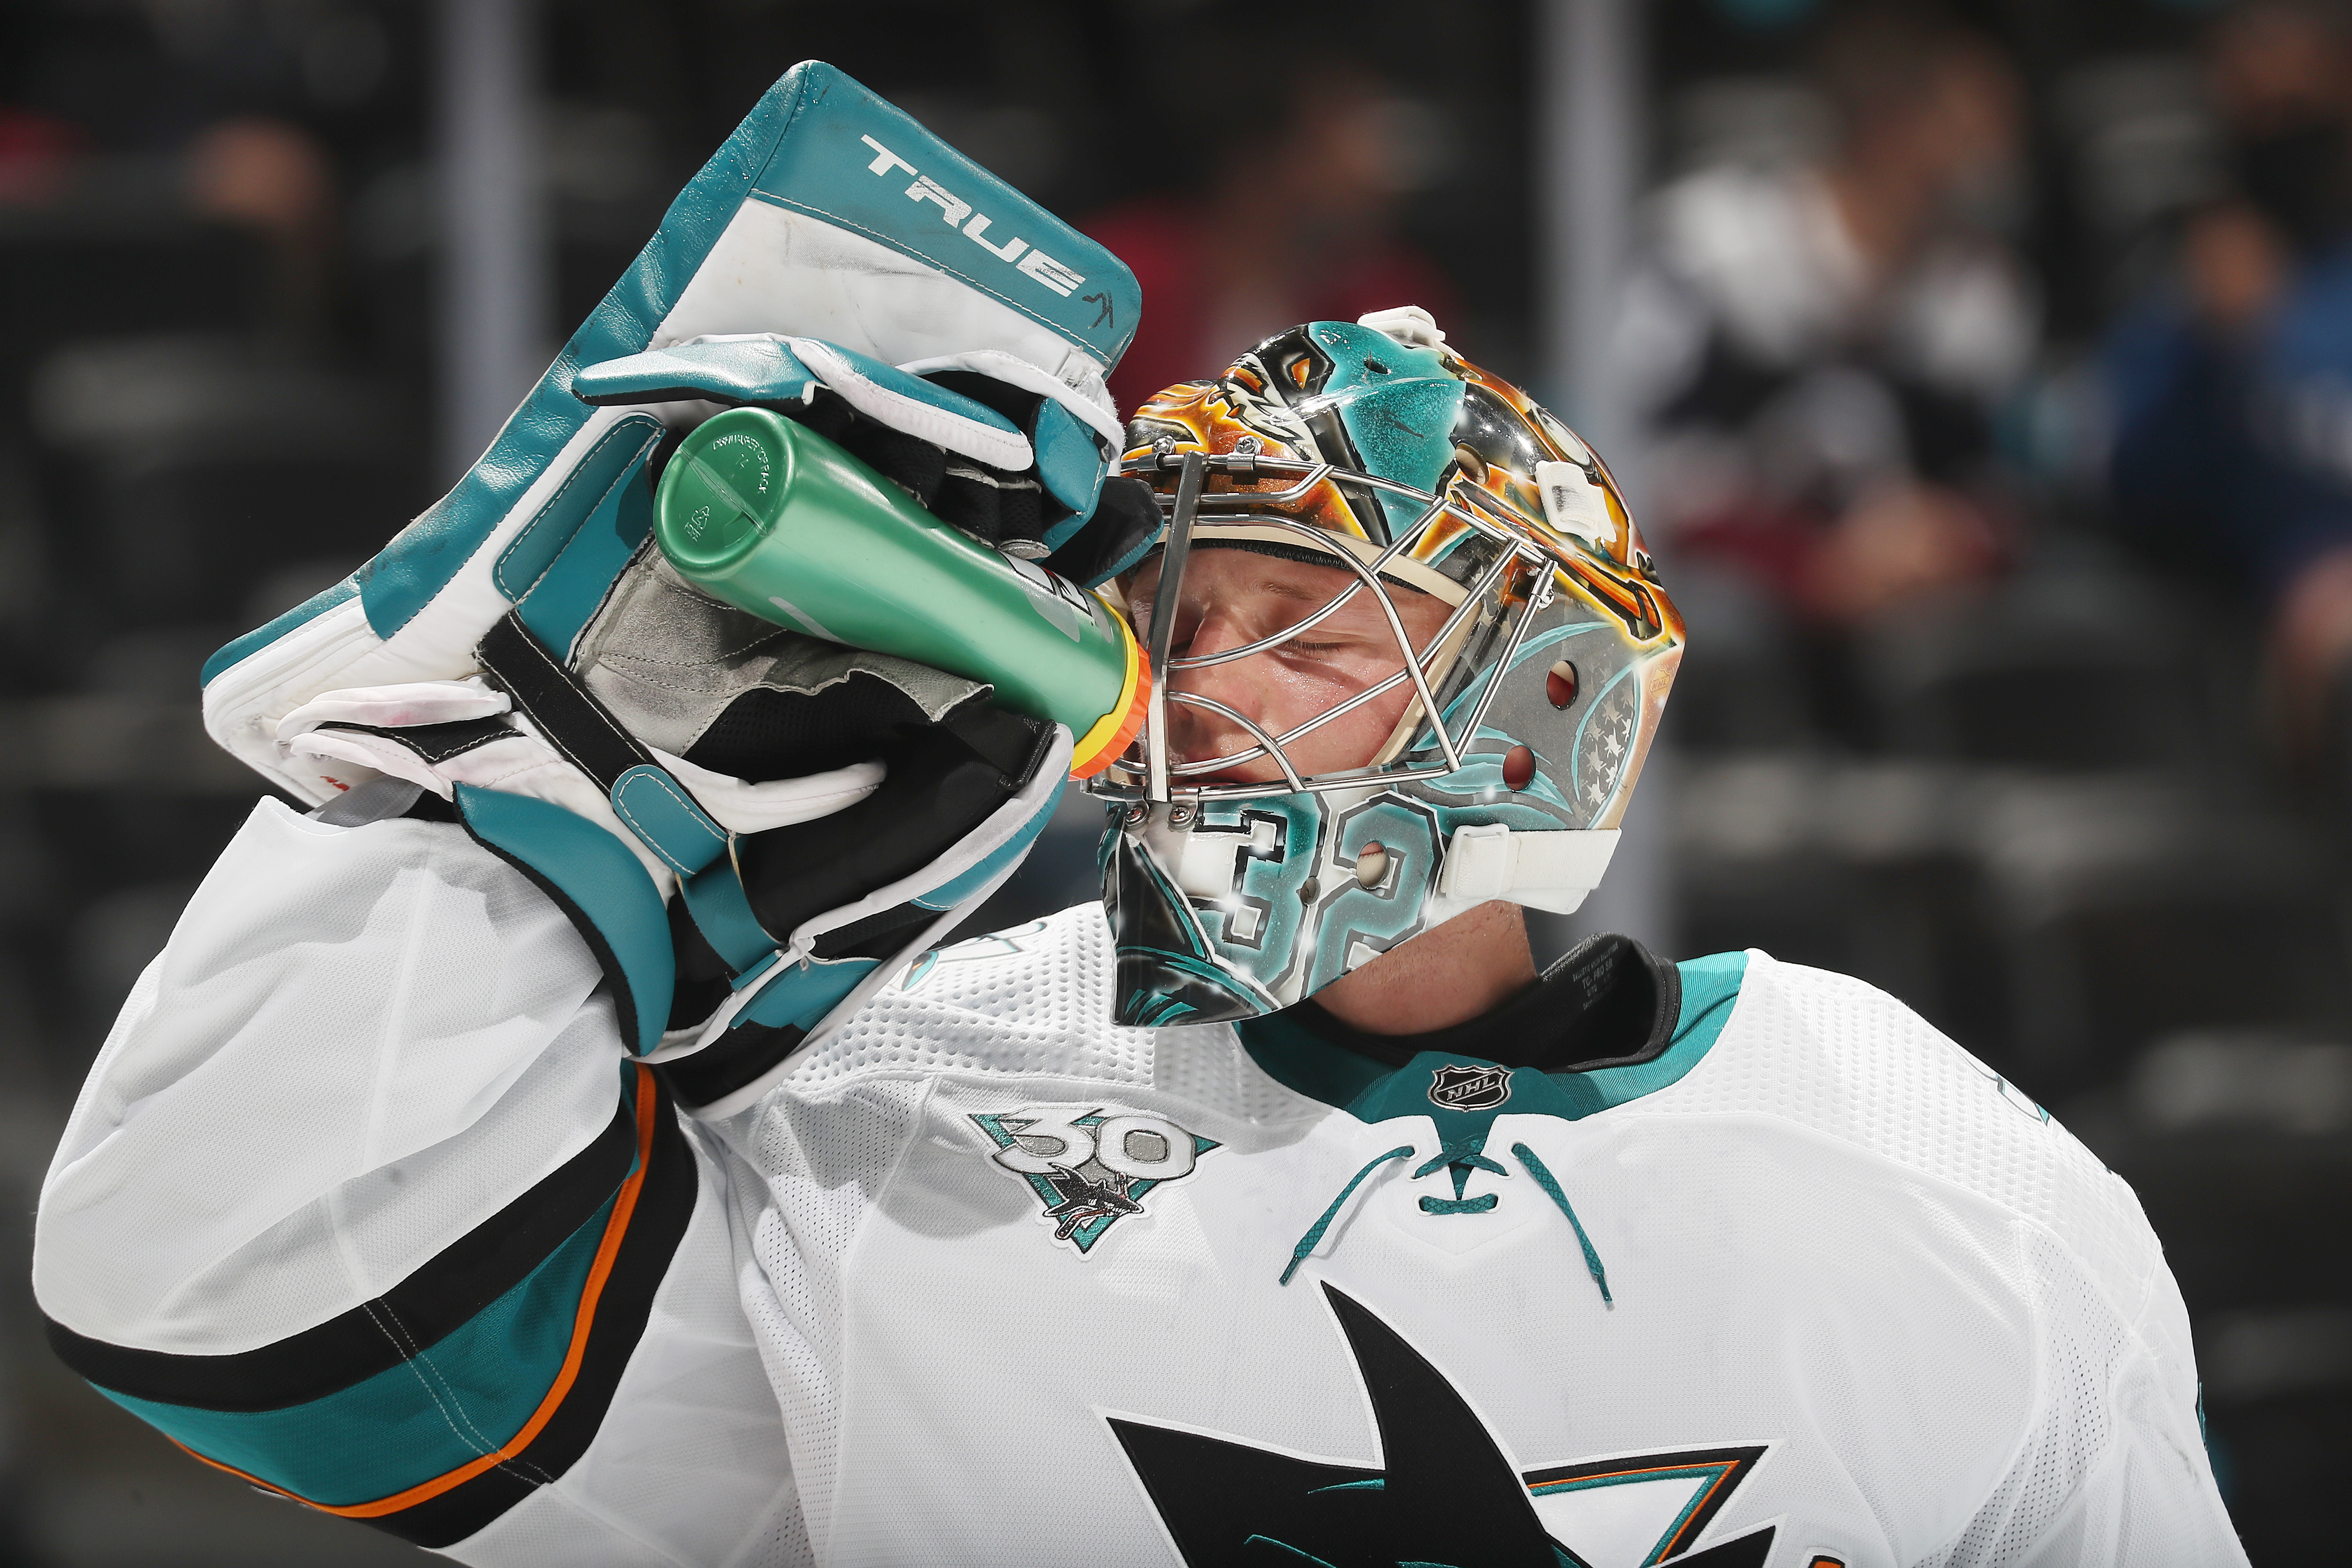 Goaltender Josef Korenar #32 of the San Jose Sharks drinks from a Gatorade bottle during a break in the action against the Colorado Avalanche at Ball Arena on May 1, 2021 in Denver, Colorado.